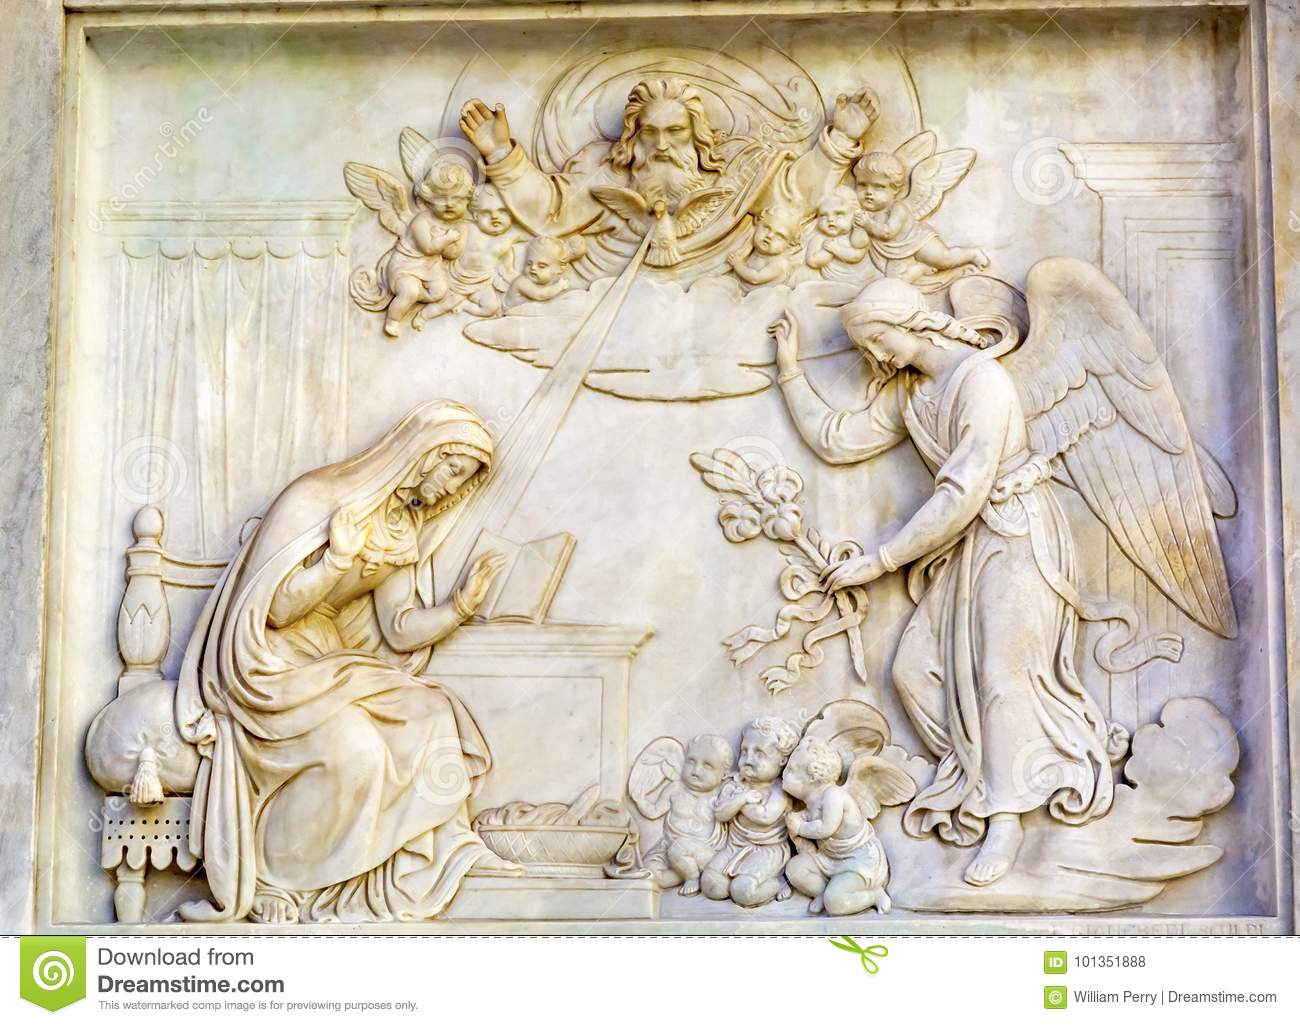 Annunciation Angel Virgin Mary Statue Immaculate Conception Column Rome Italy